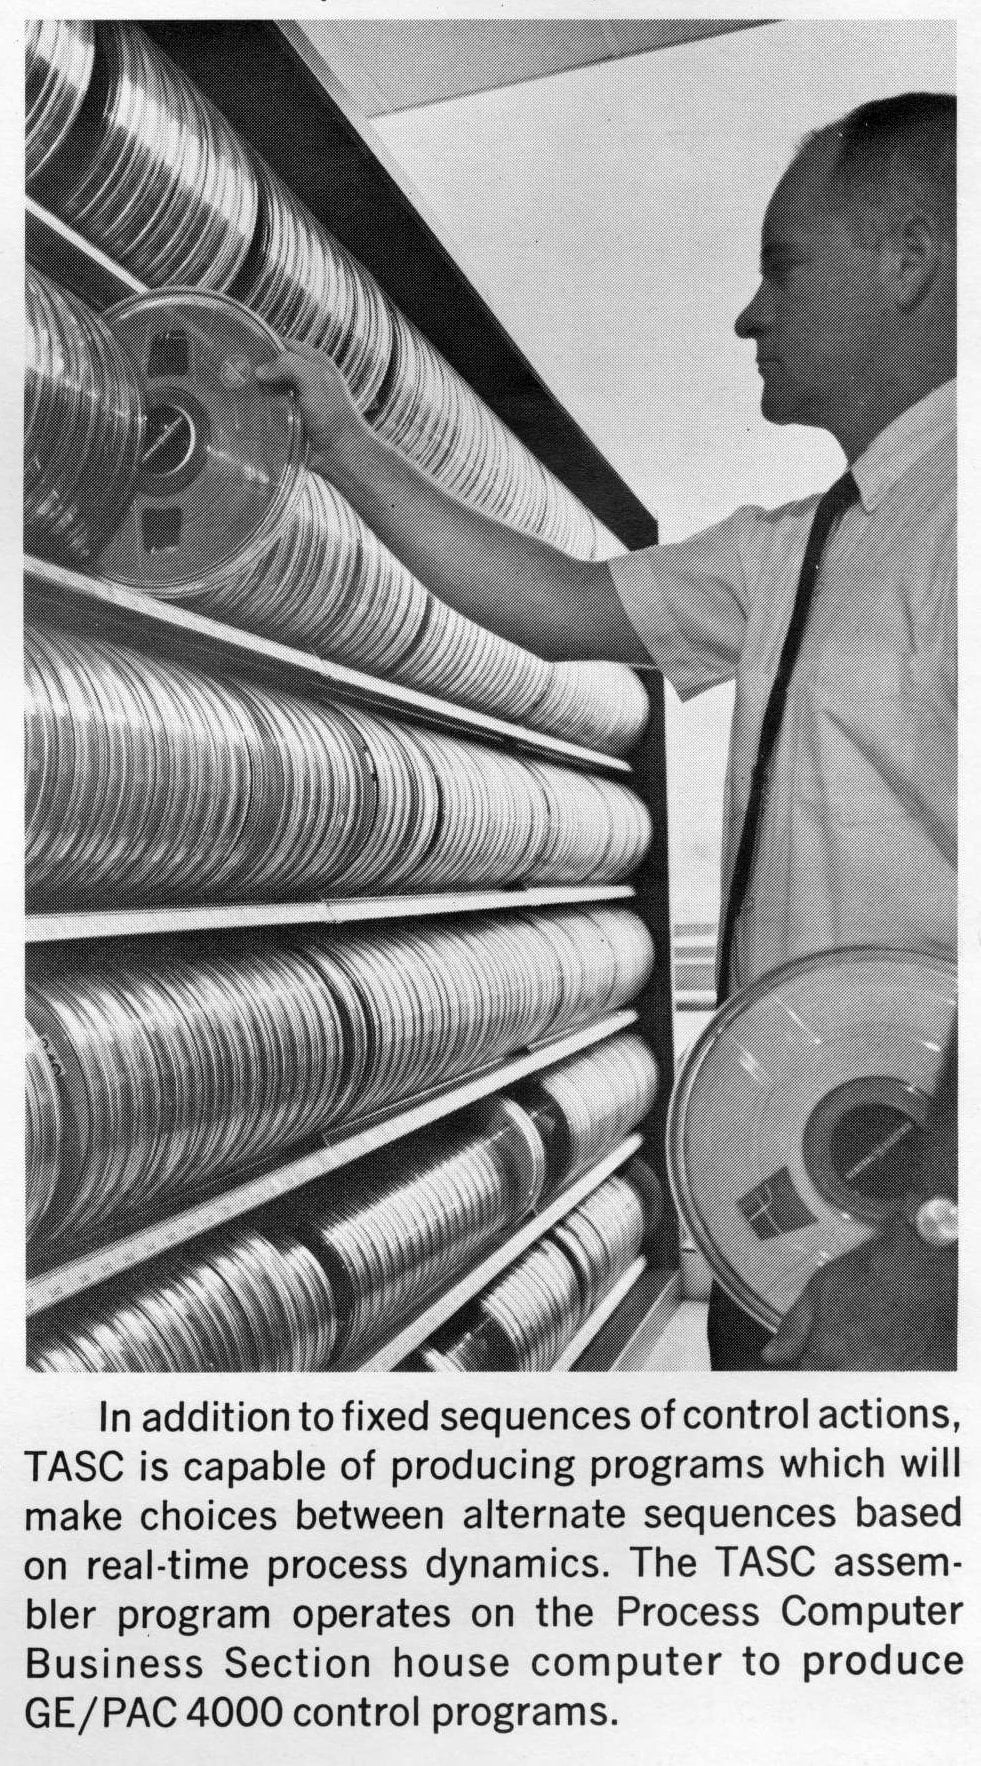 Vintage computer programming on tape reels - Computers in the 1960s